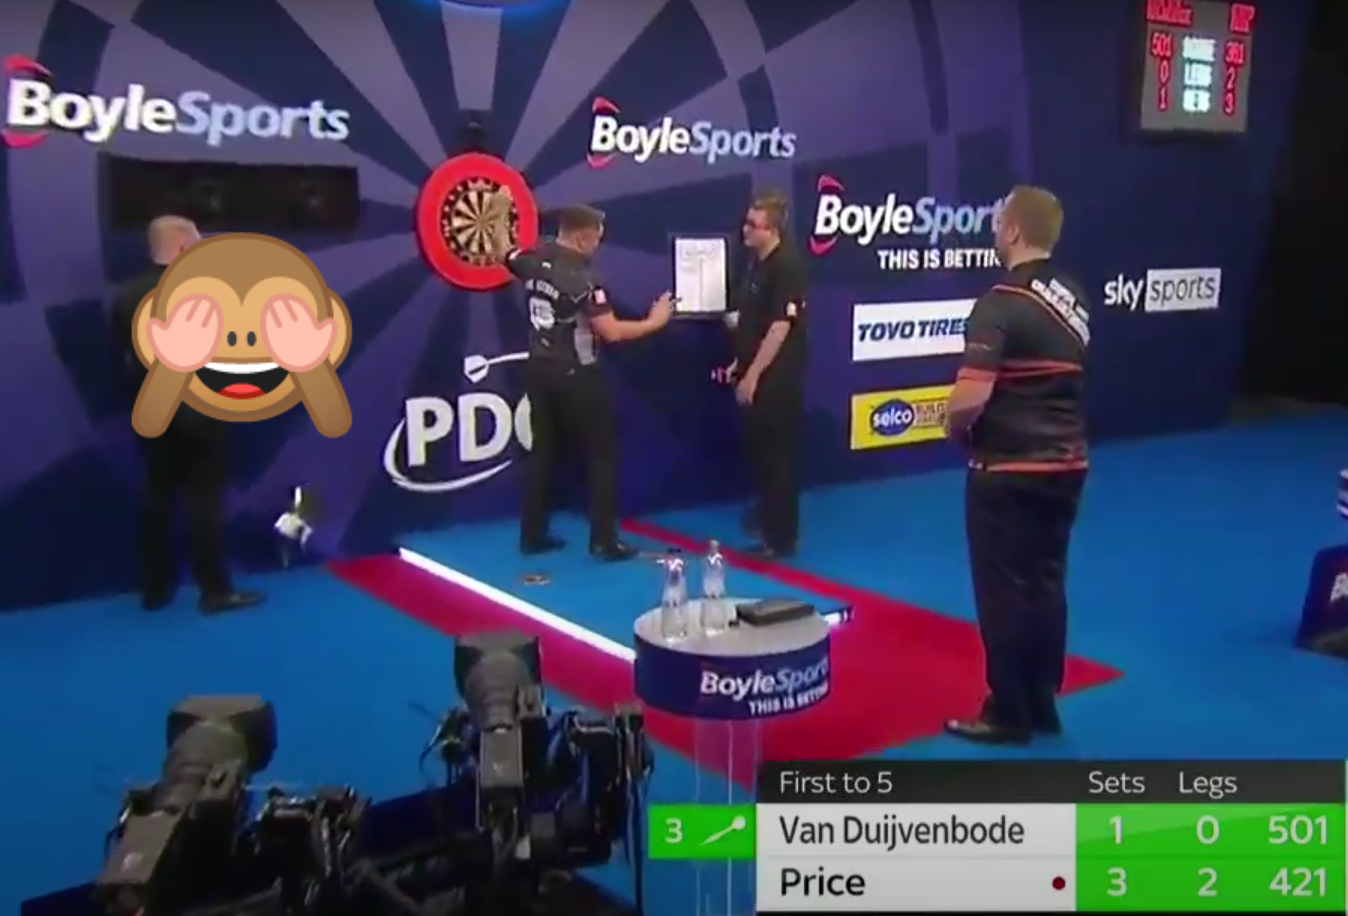 VIDEO: Referee Kirk Bevins' Funny No-Score Moment With Gerwyn Price